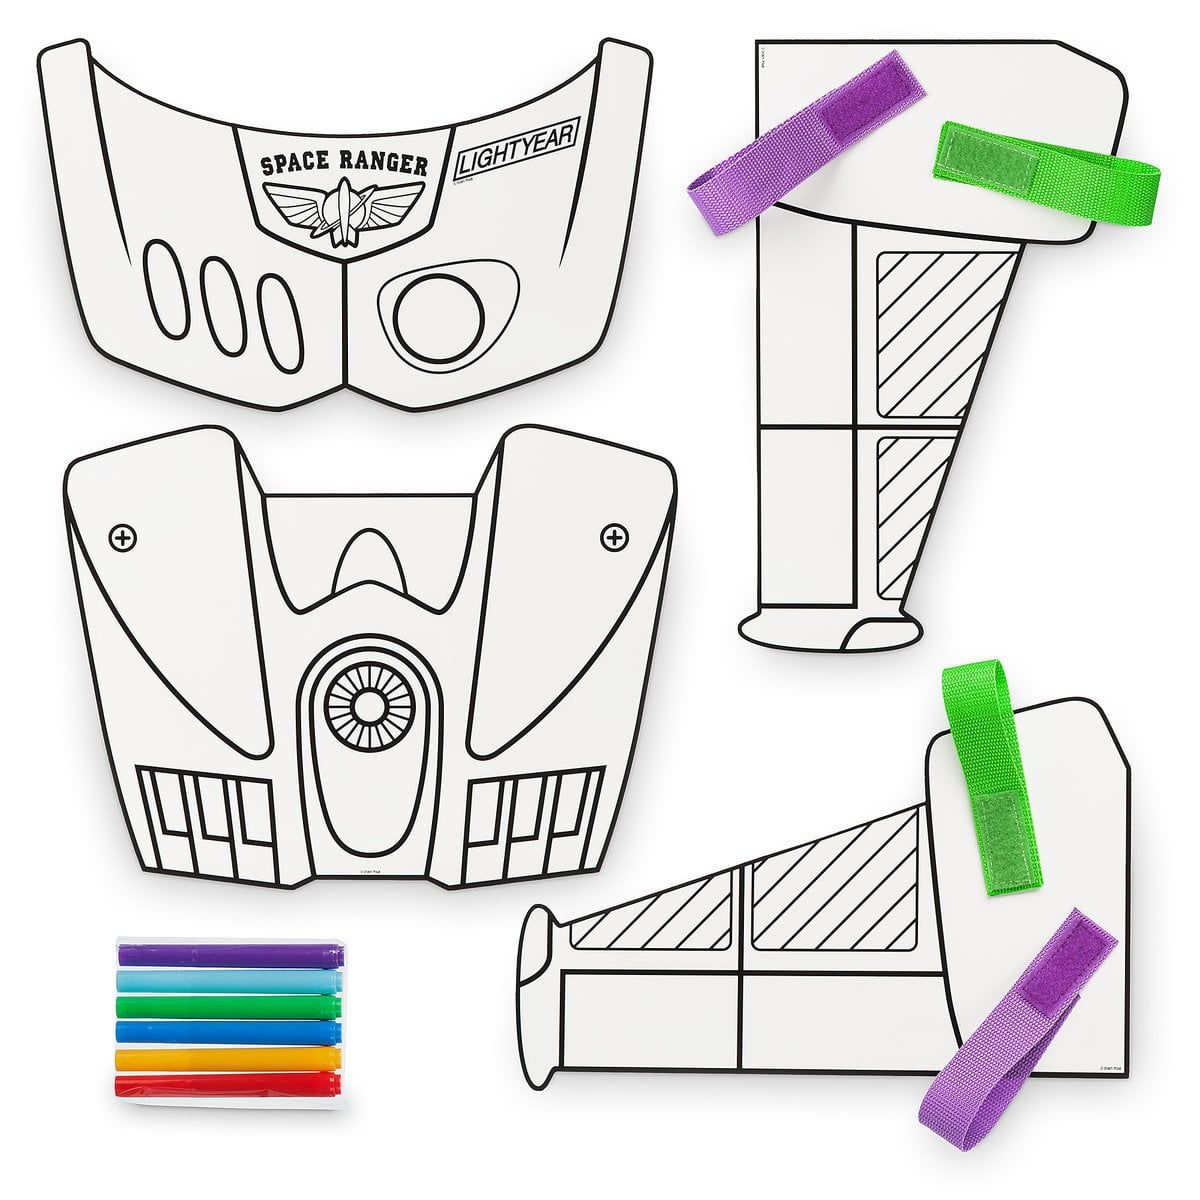 Product Image Of Buzz Lightyear Create Your Own Space Ranger Wings Craft Kit 4 Buzz Lightyear Buzz Lightyear Wings Toy Story Birthday